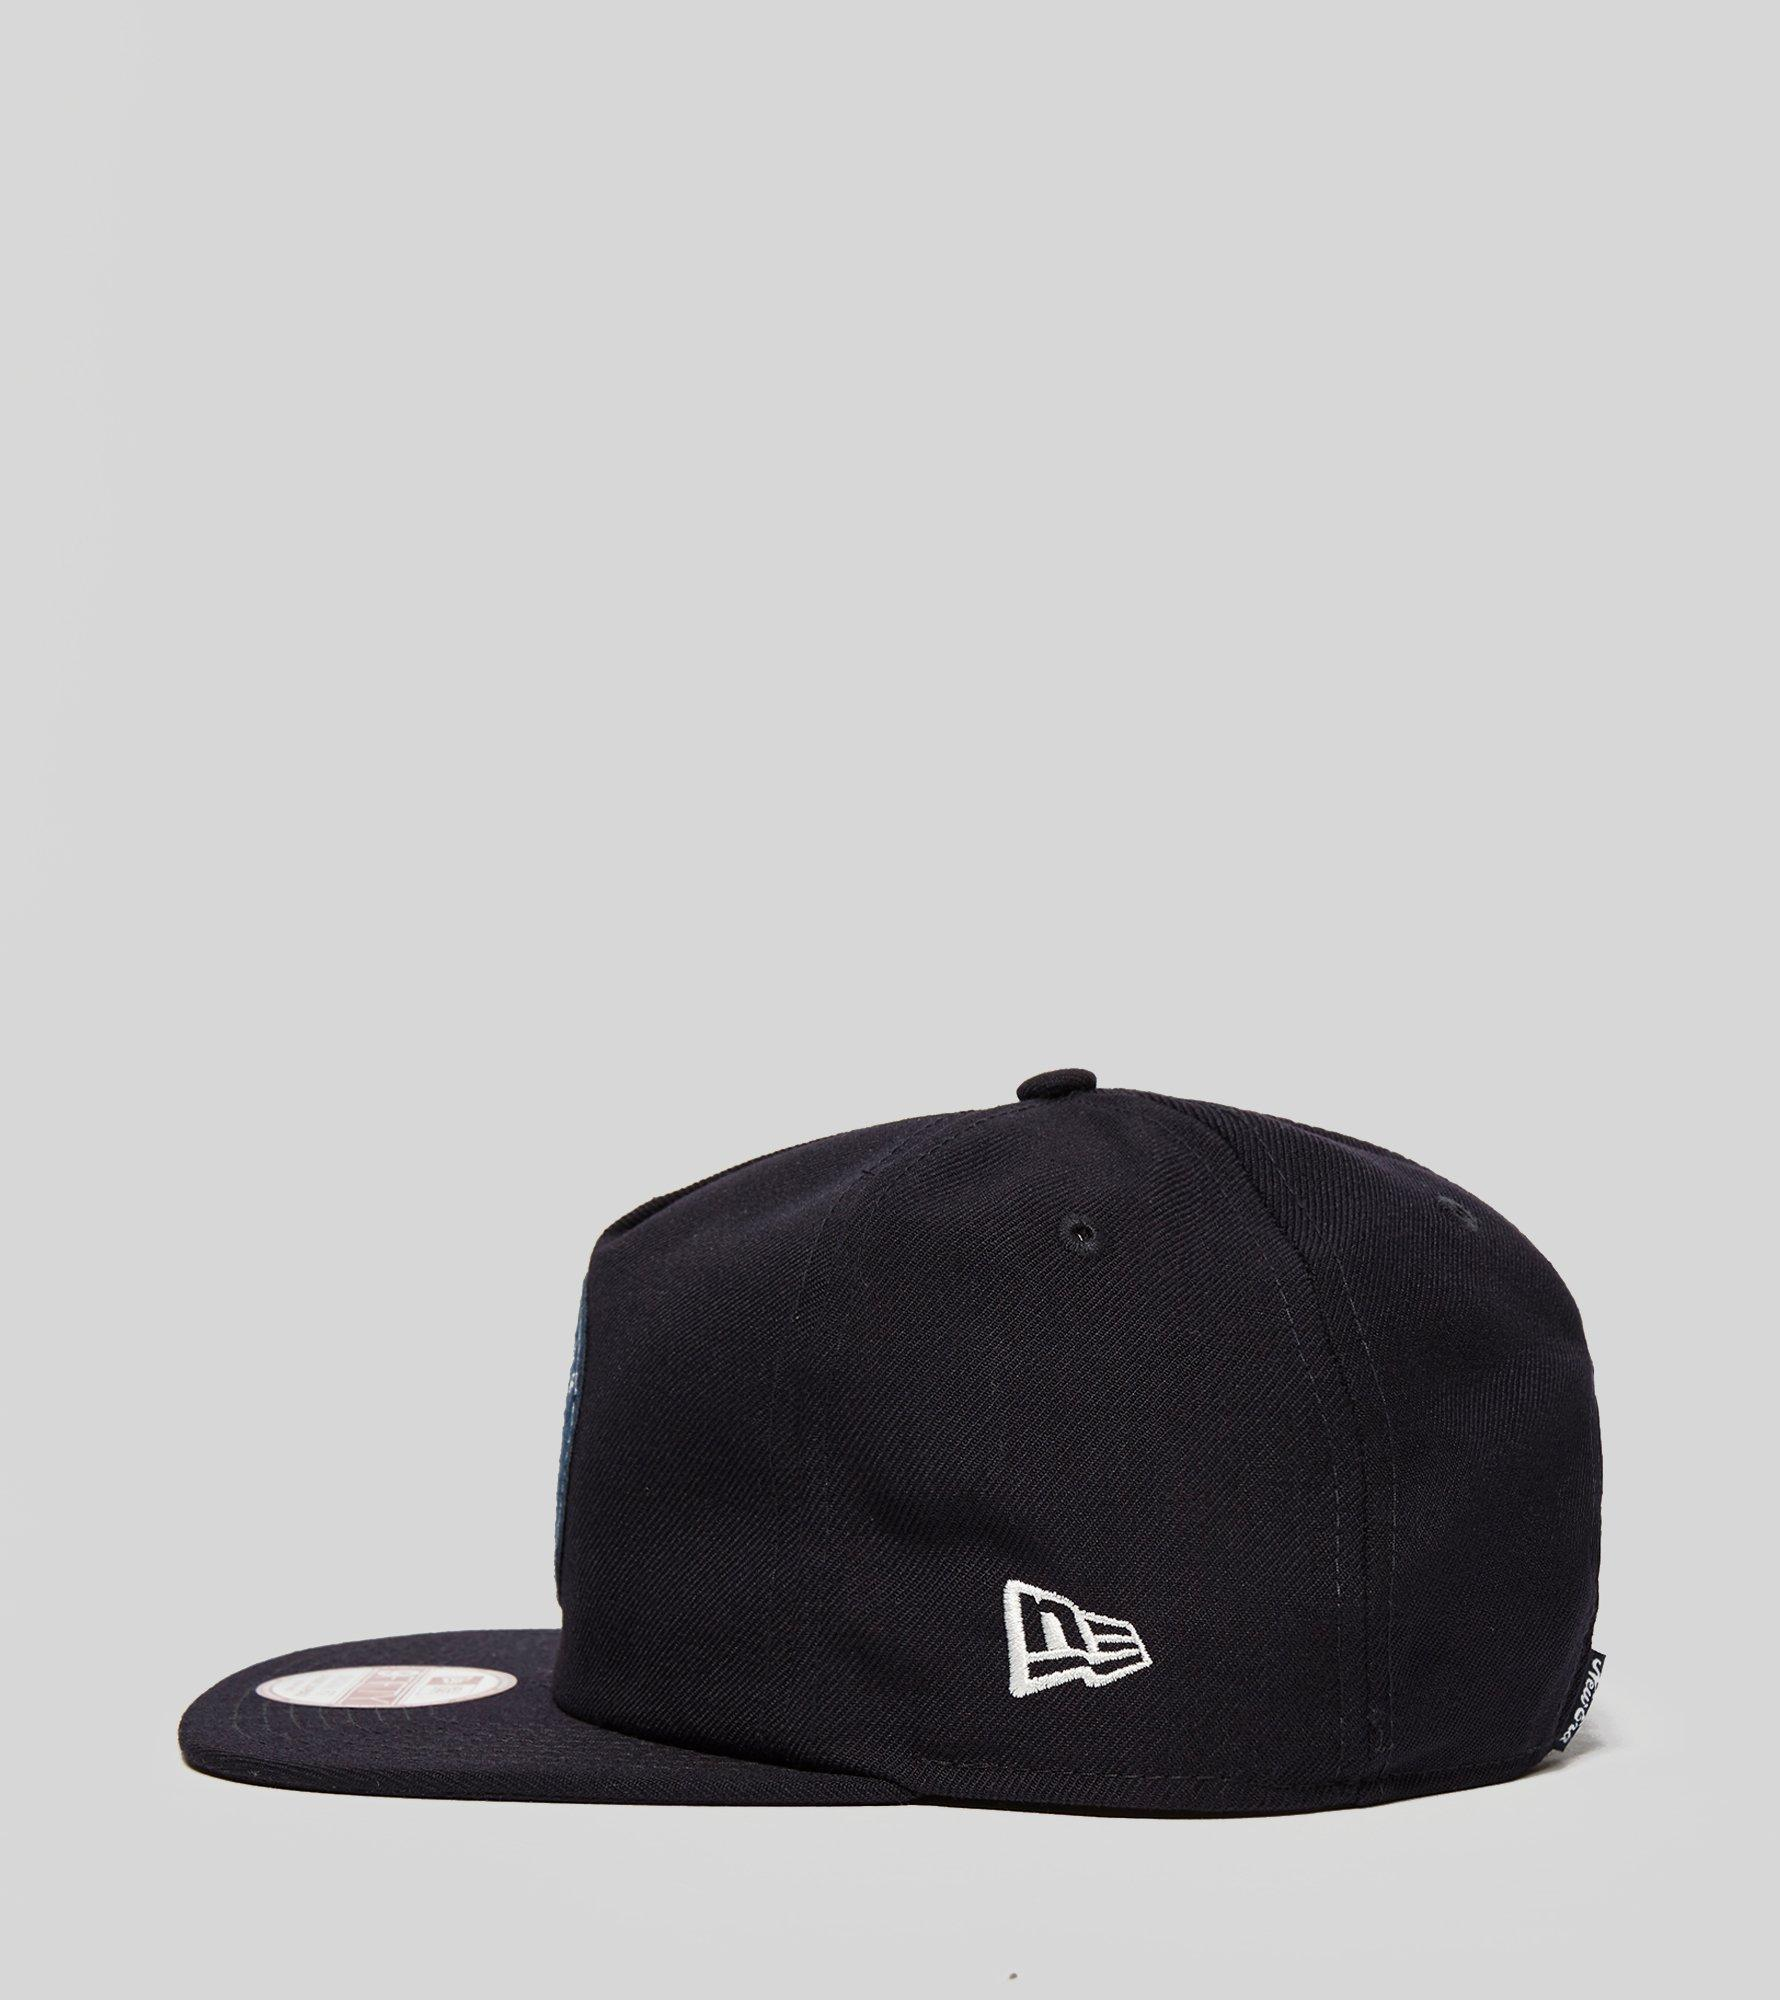 Lyst - Ktz 9fifty A-frame Wool Snapback - Size? Exclusive in Black ...